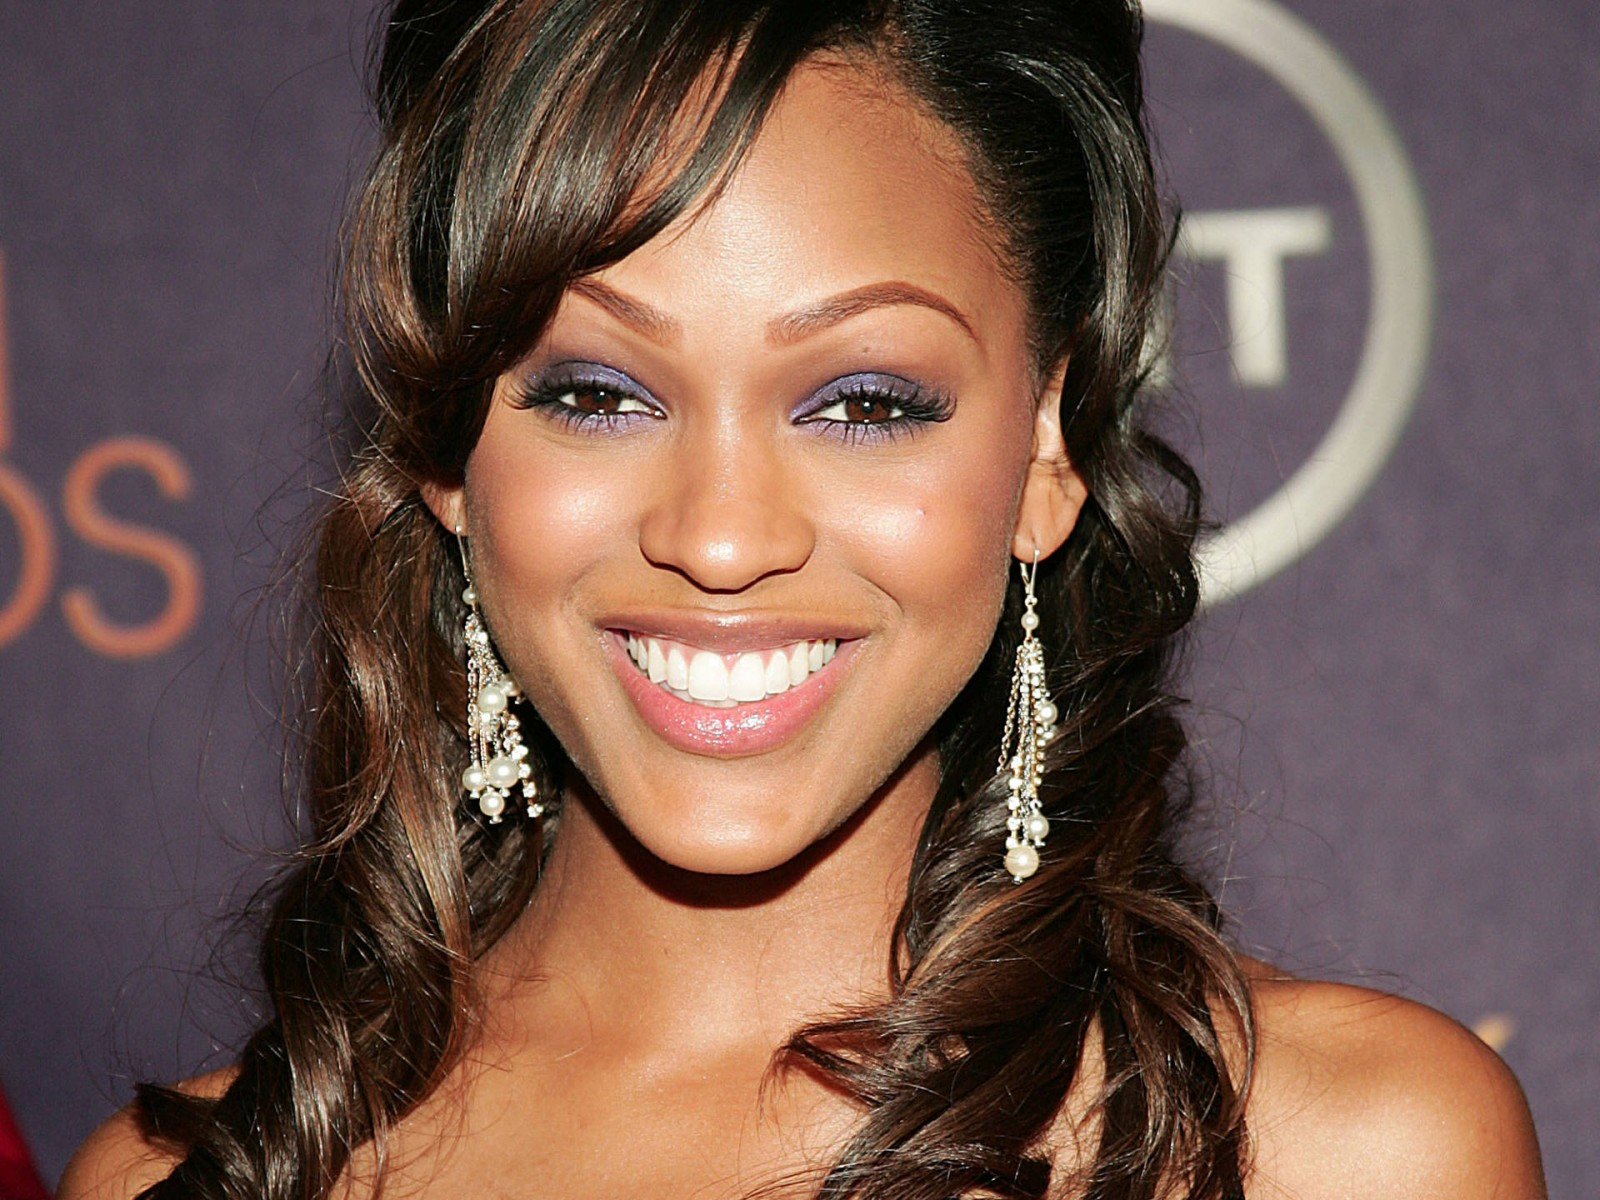 Meagan good sexy lips seems remarkable